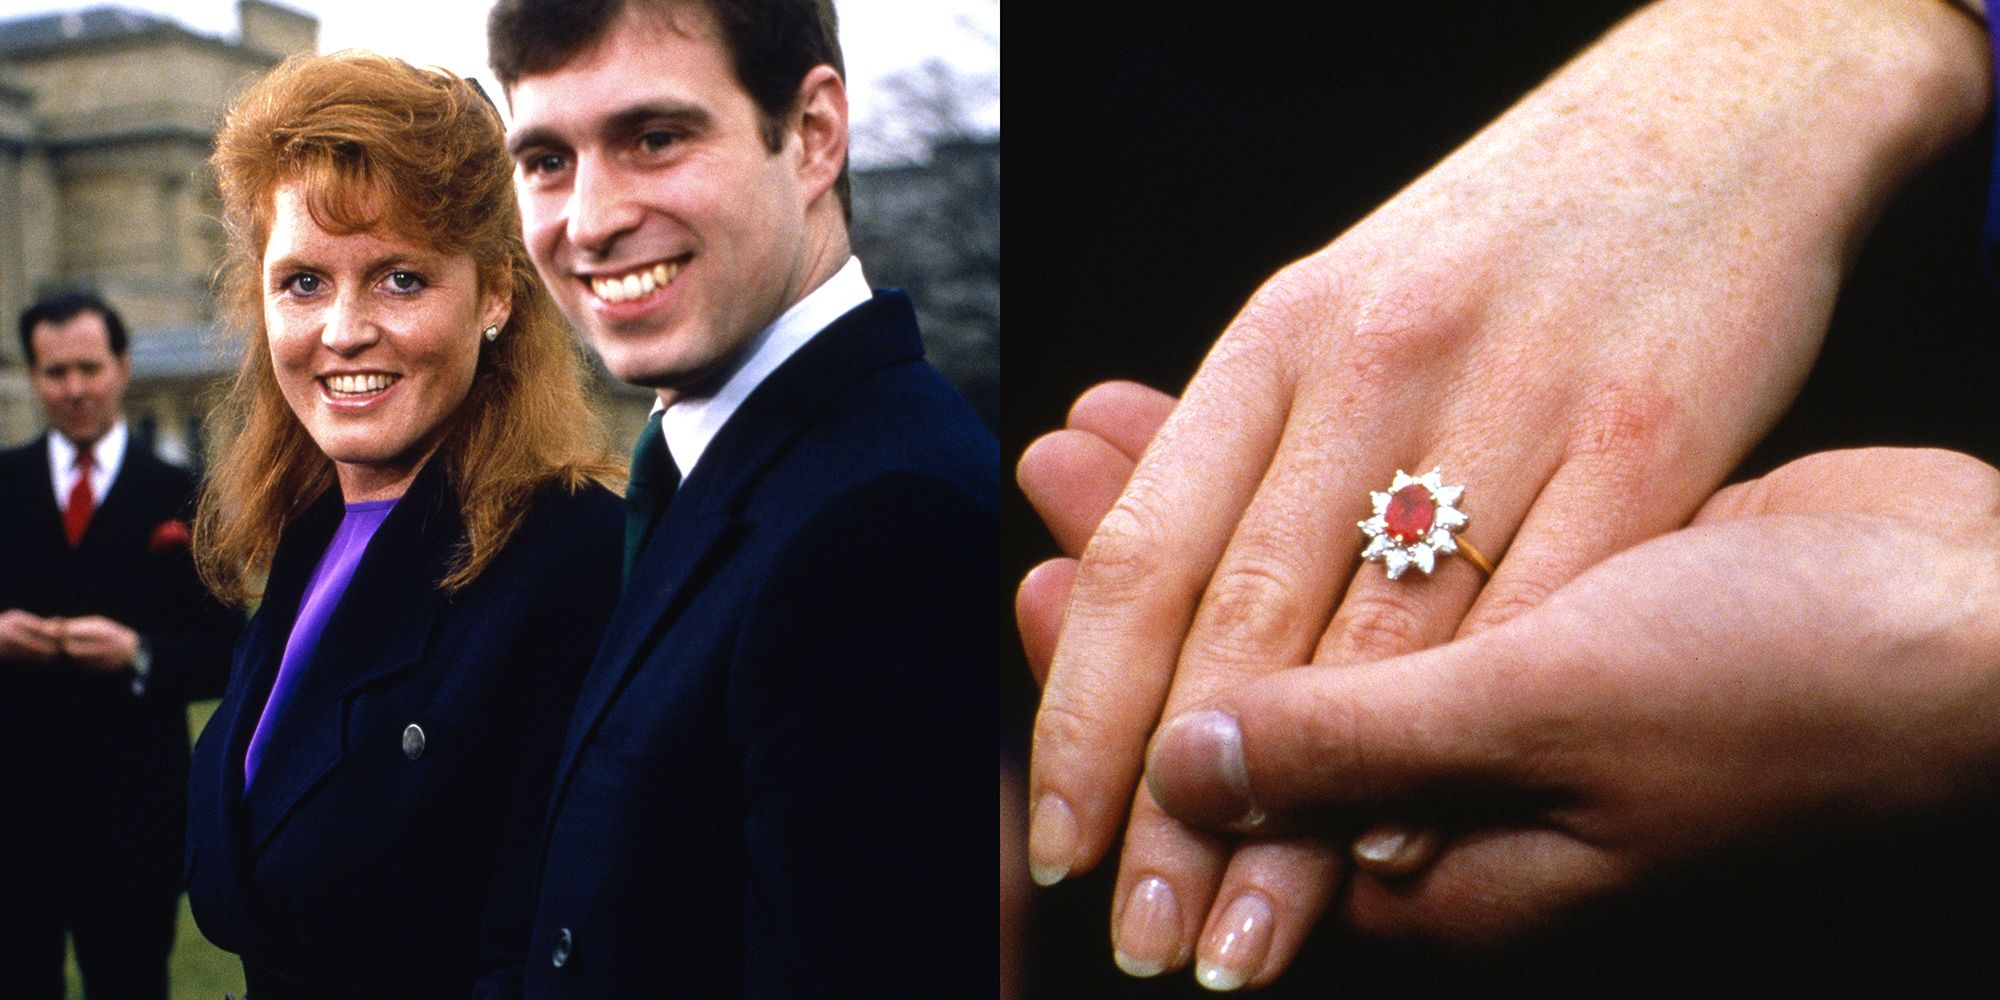 princess s royal fergusons prince eugenie ring like andrew eugenies looks photos rings engagement ferguson sarah